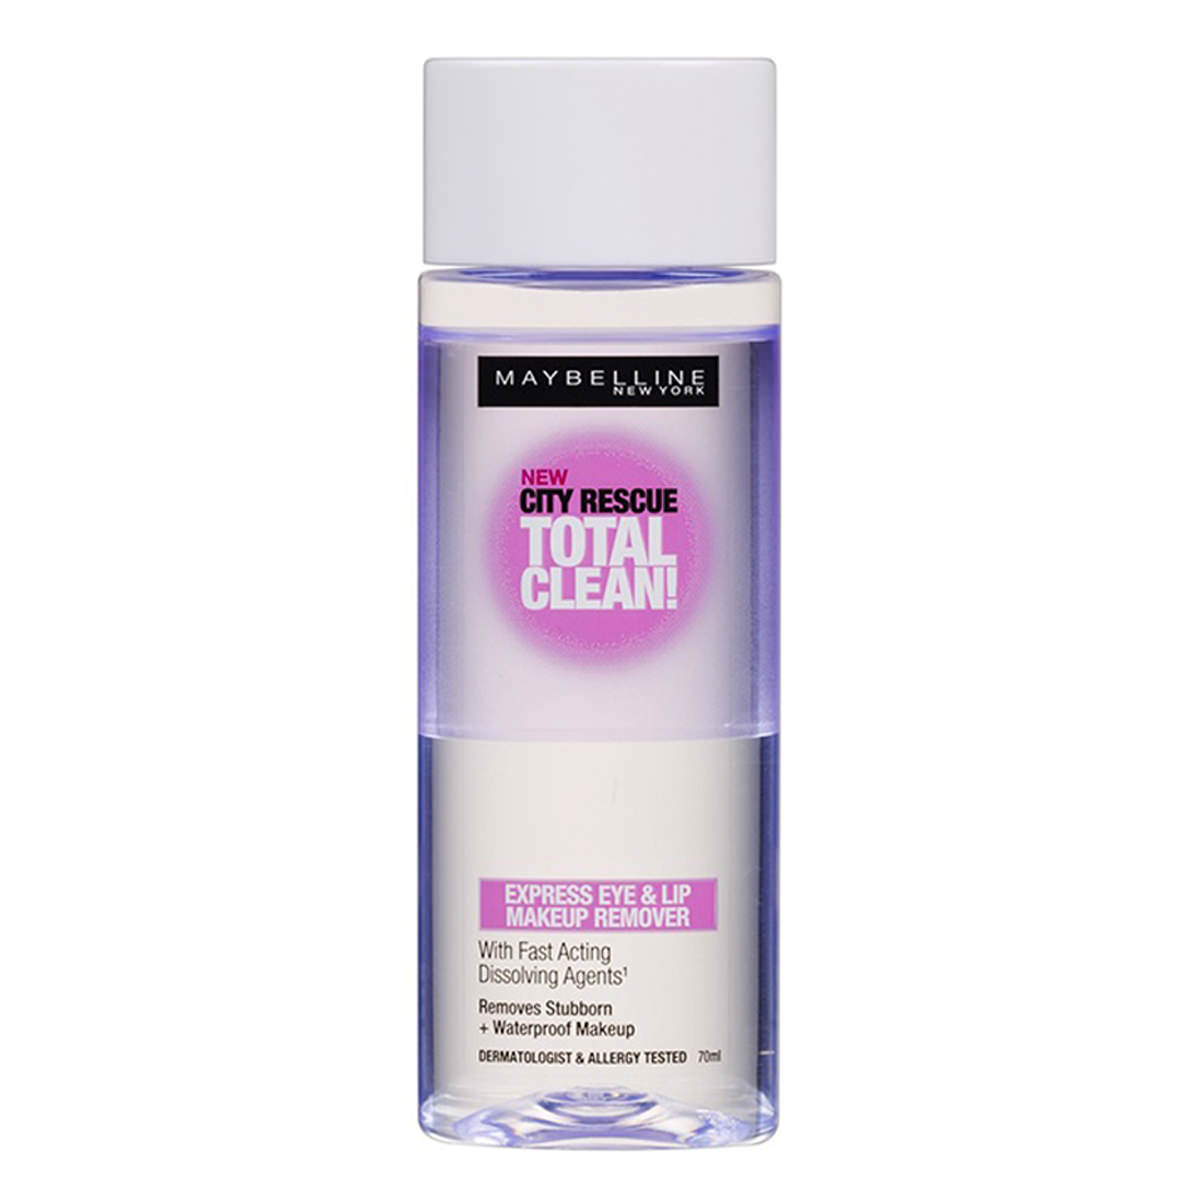 Maybelline-Clean-Express-Eye-Lip-Makeup-Remover-1-sfw(1)